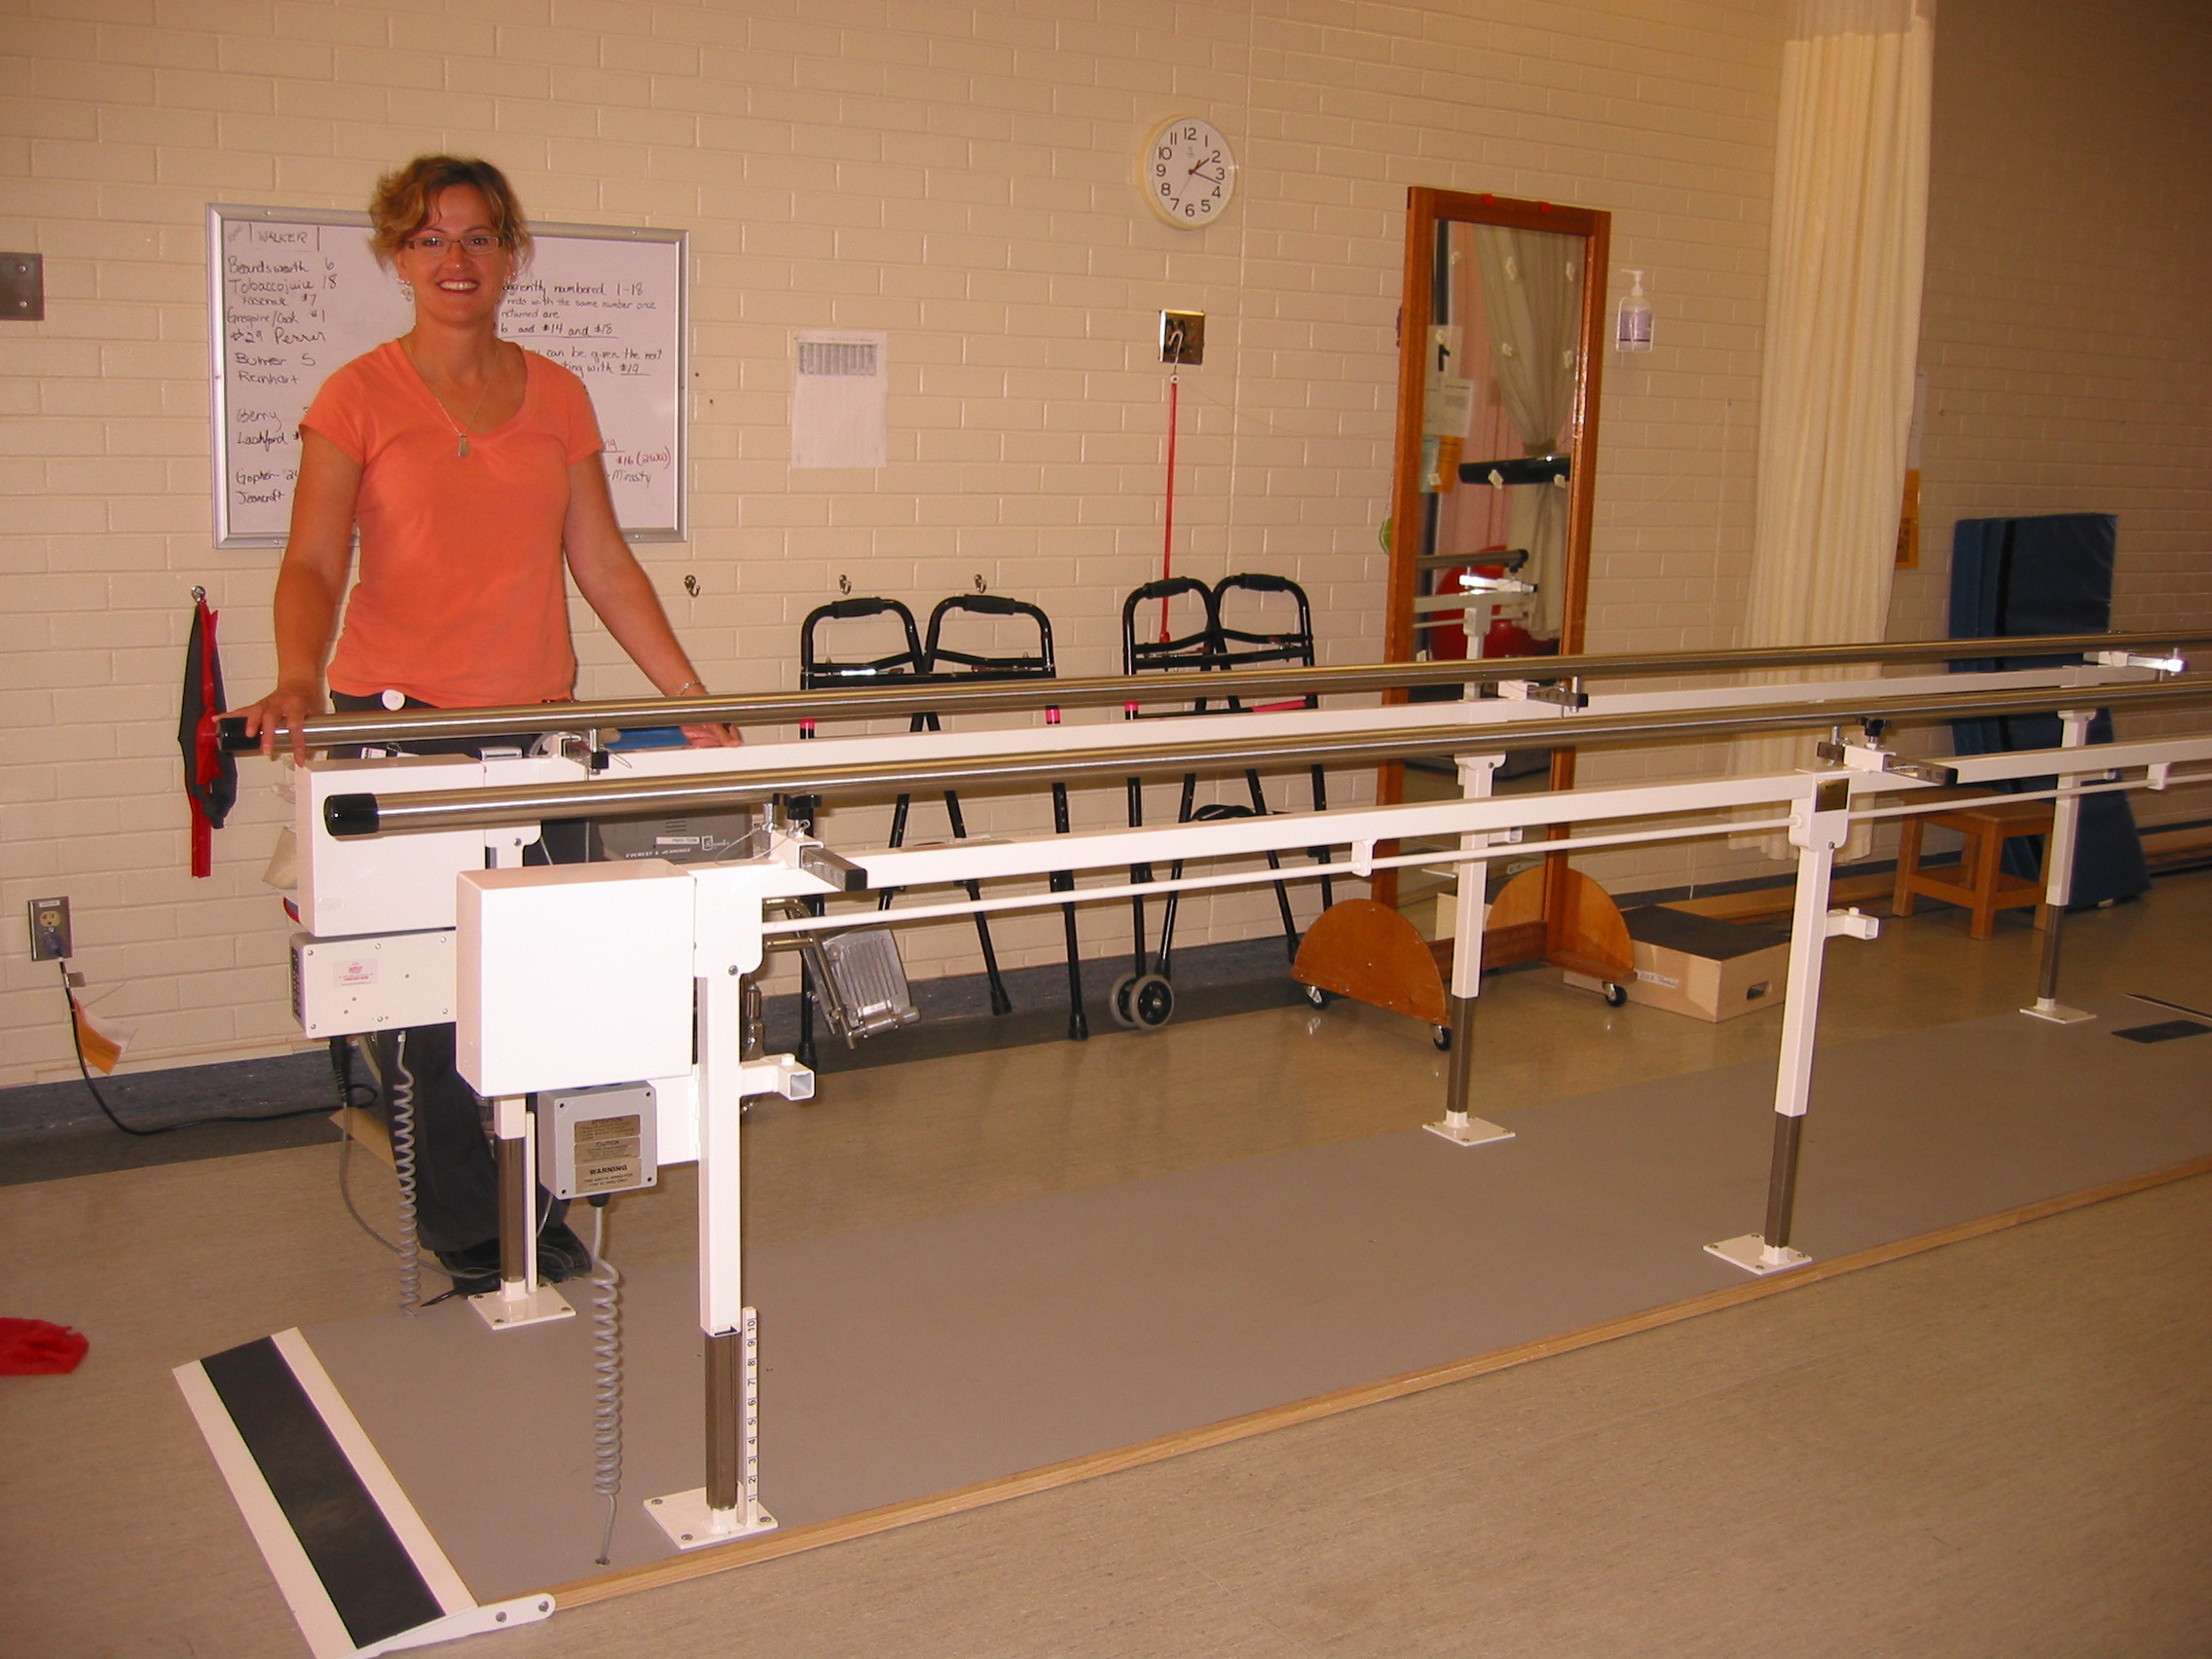 Parallel Bars for Physiotherapy